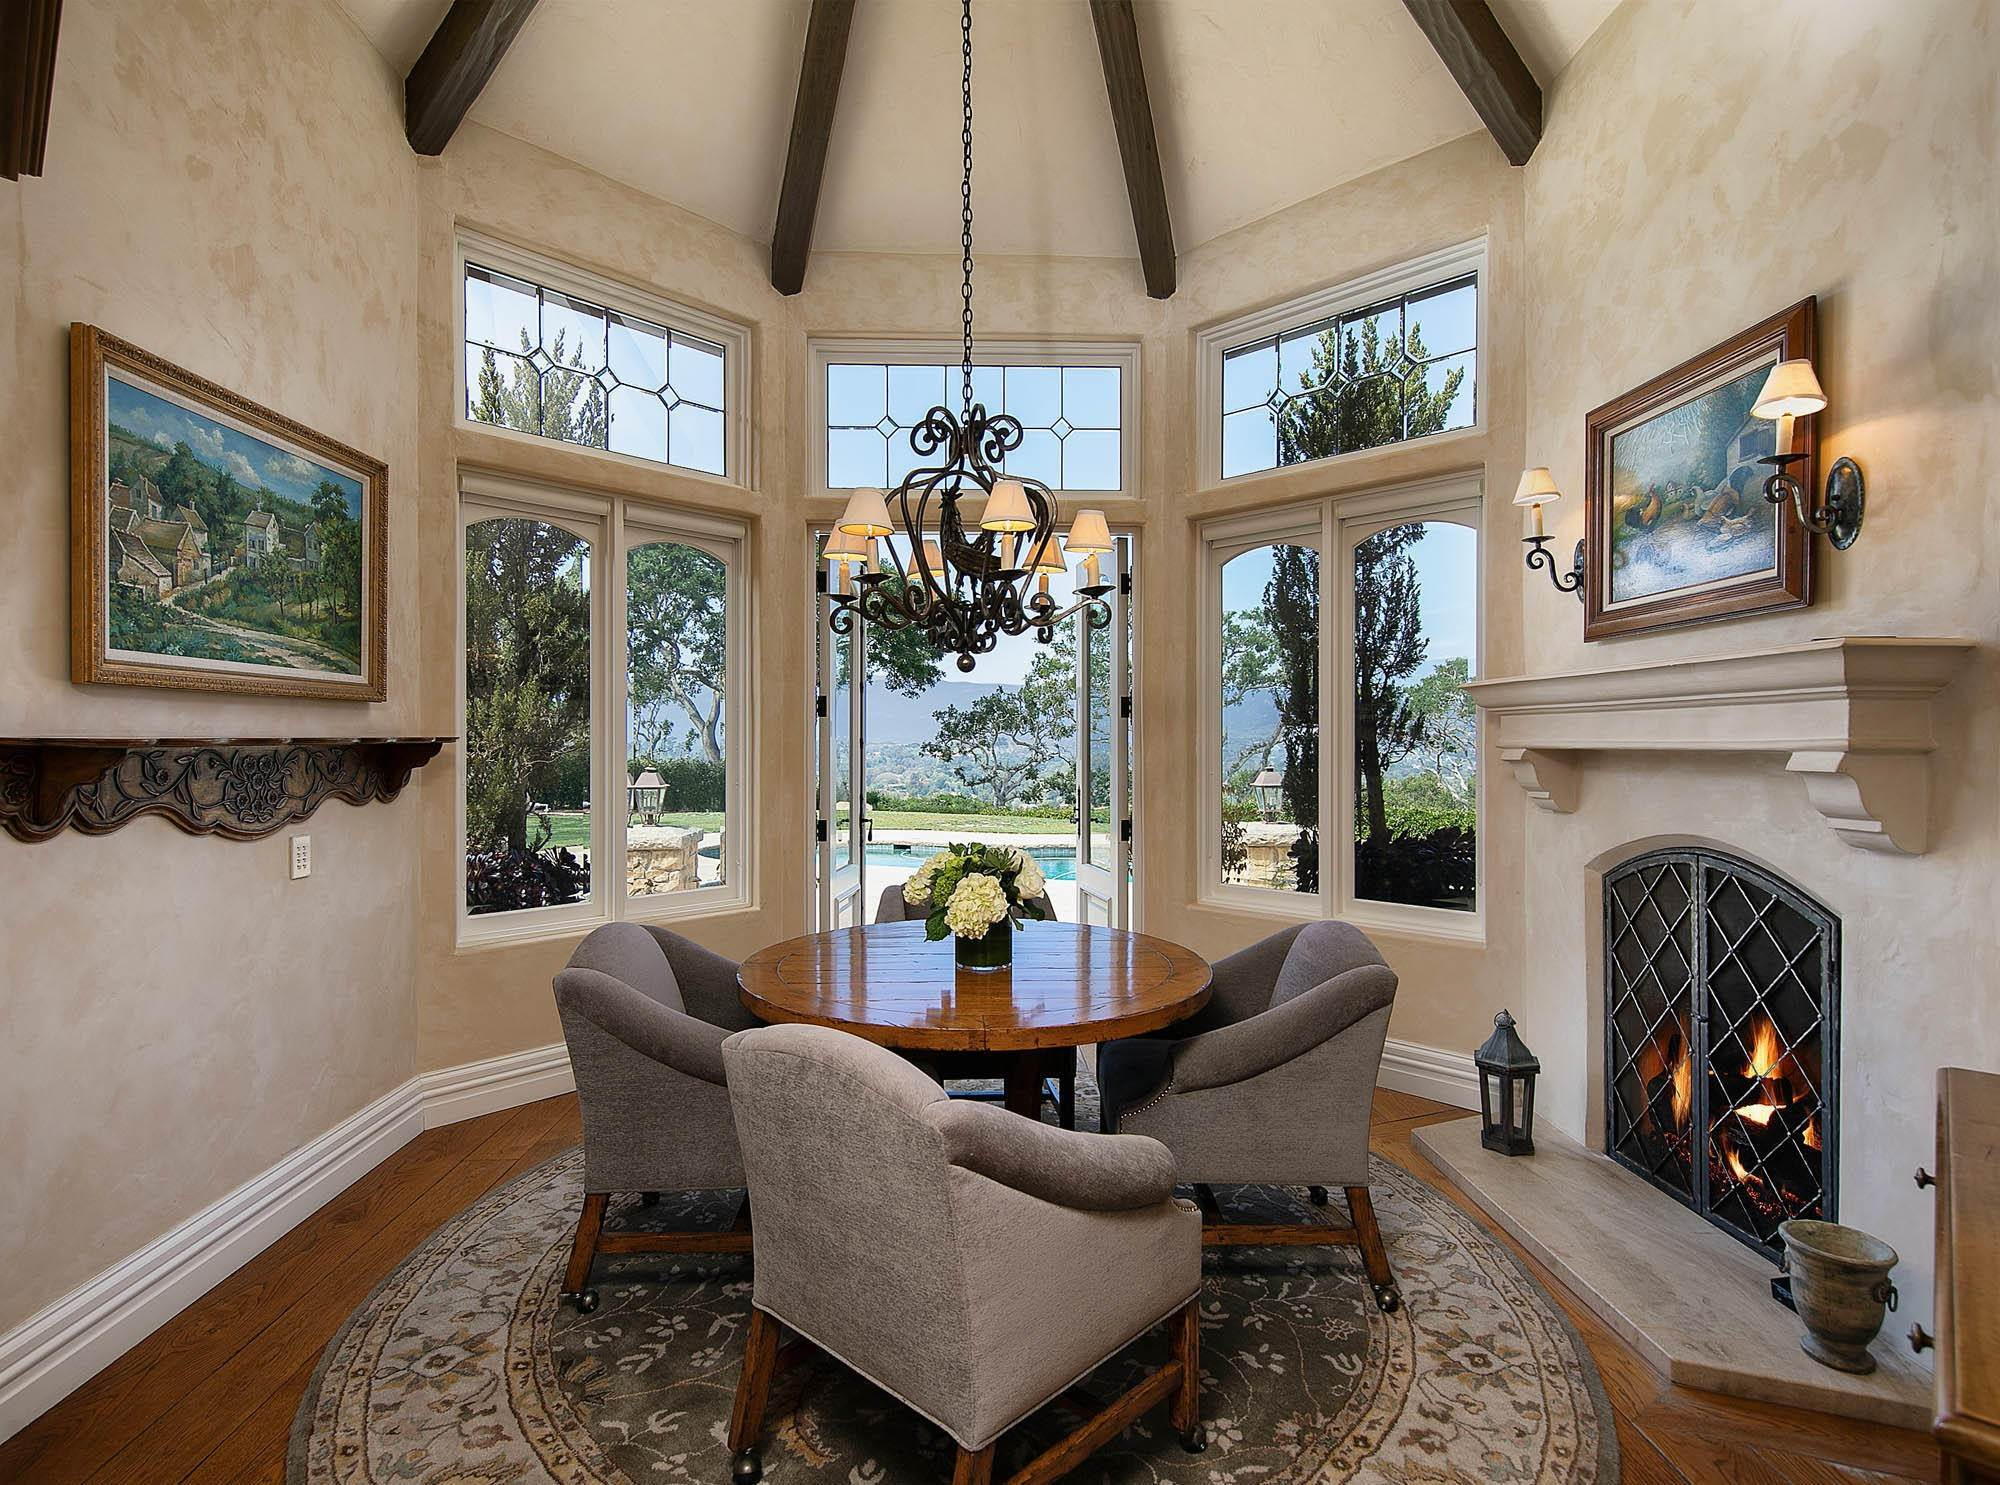 9. Estate for Sale at 4180 Cresta Avenue Santa Barbara, California 93110 United States